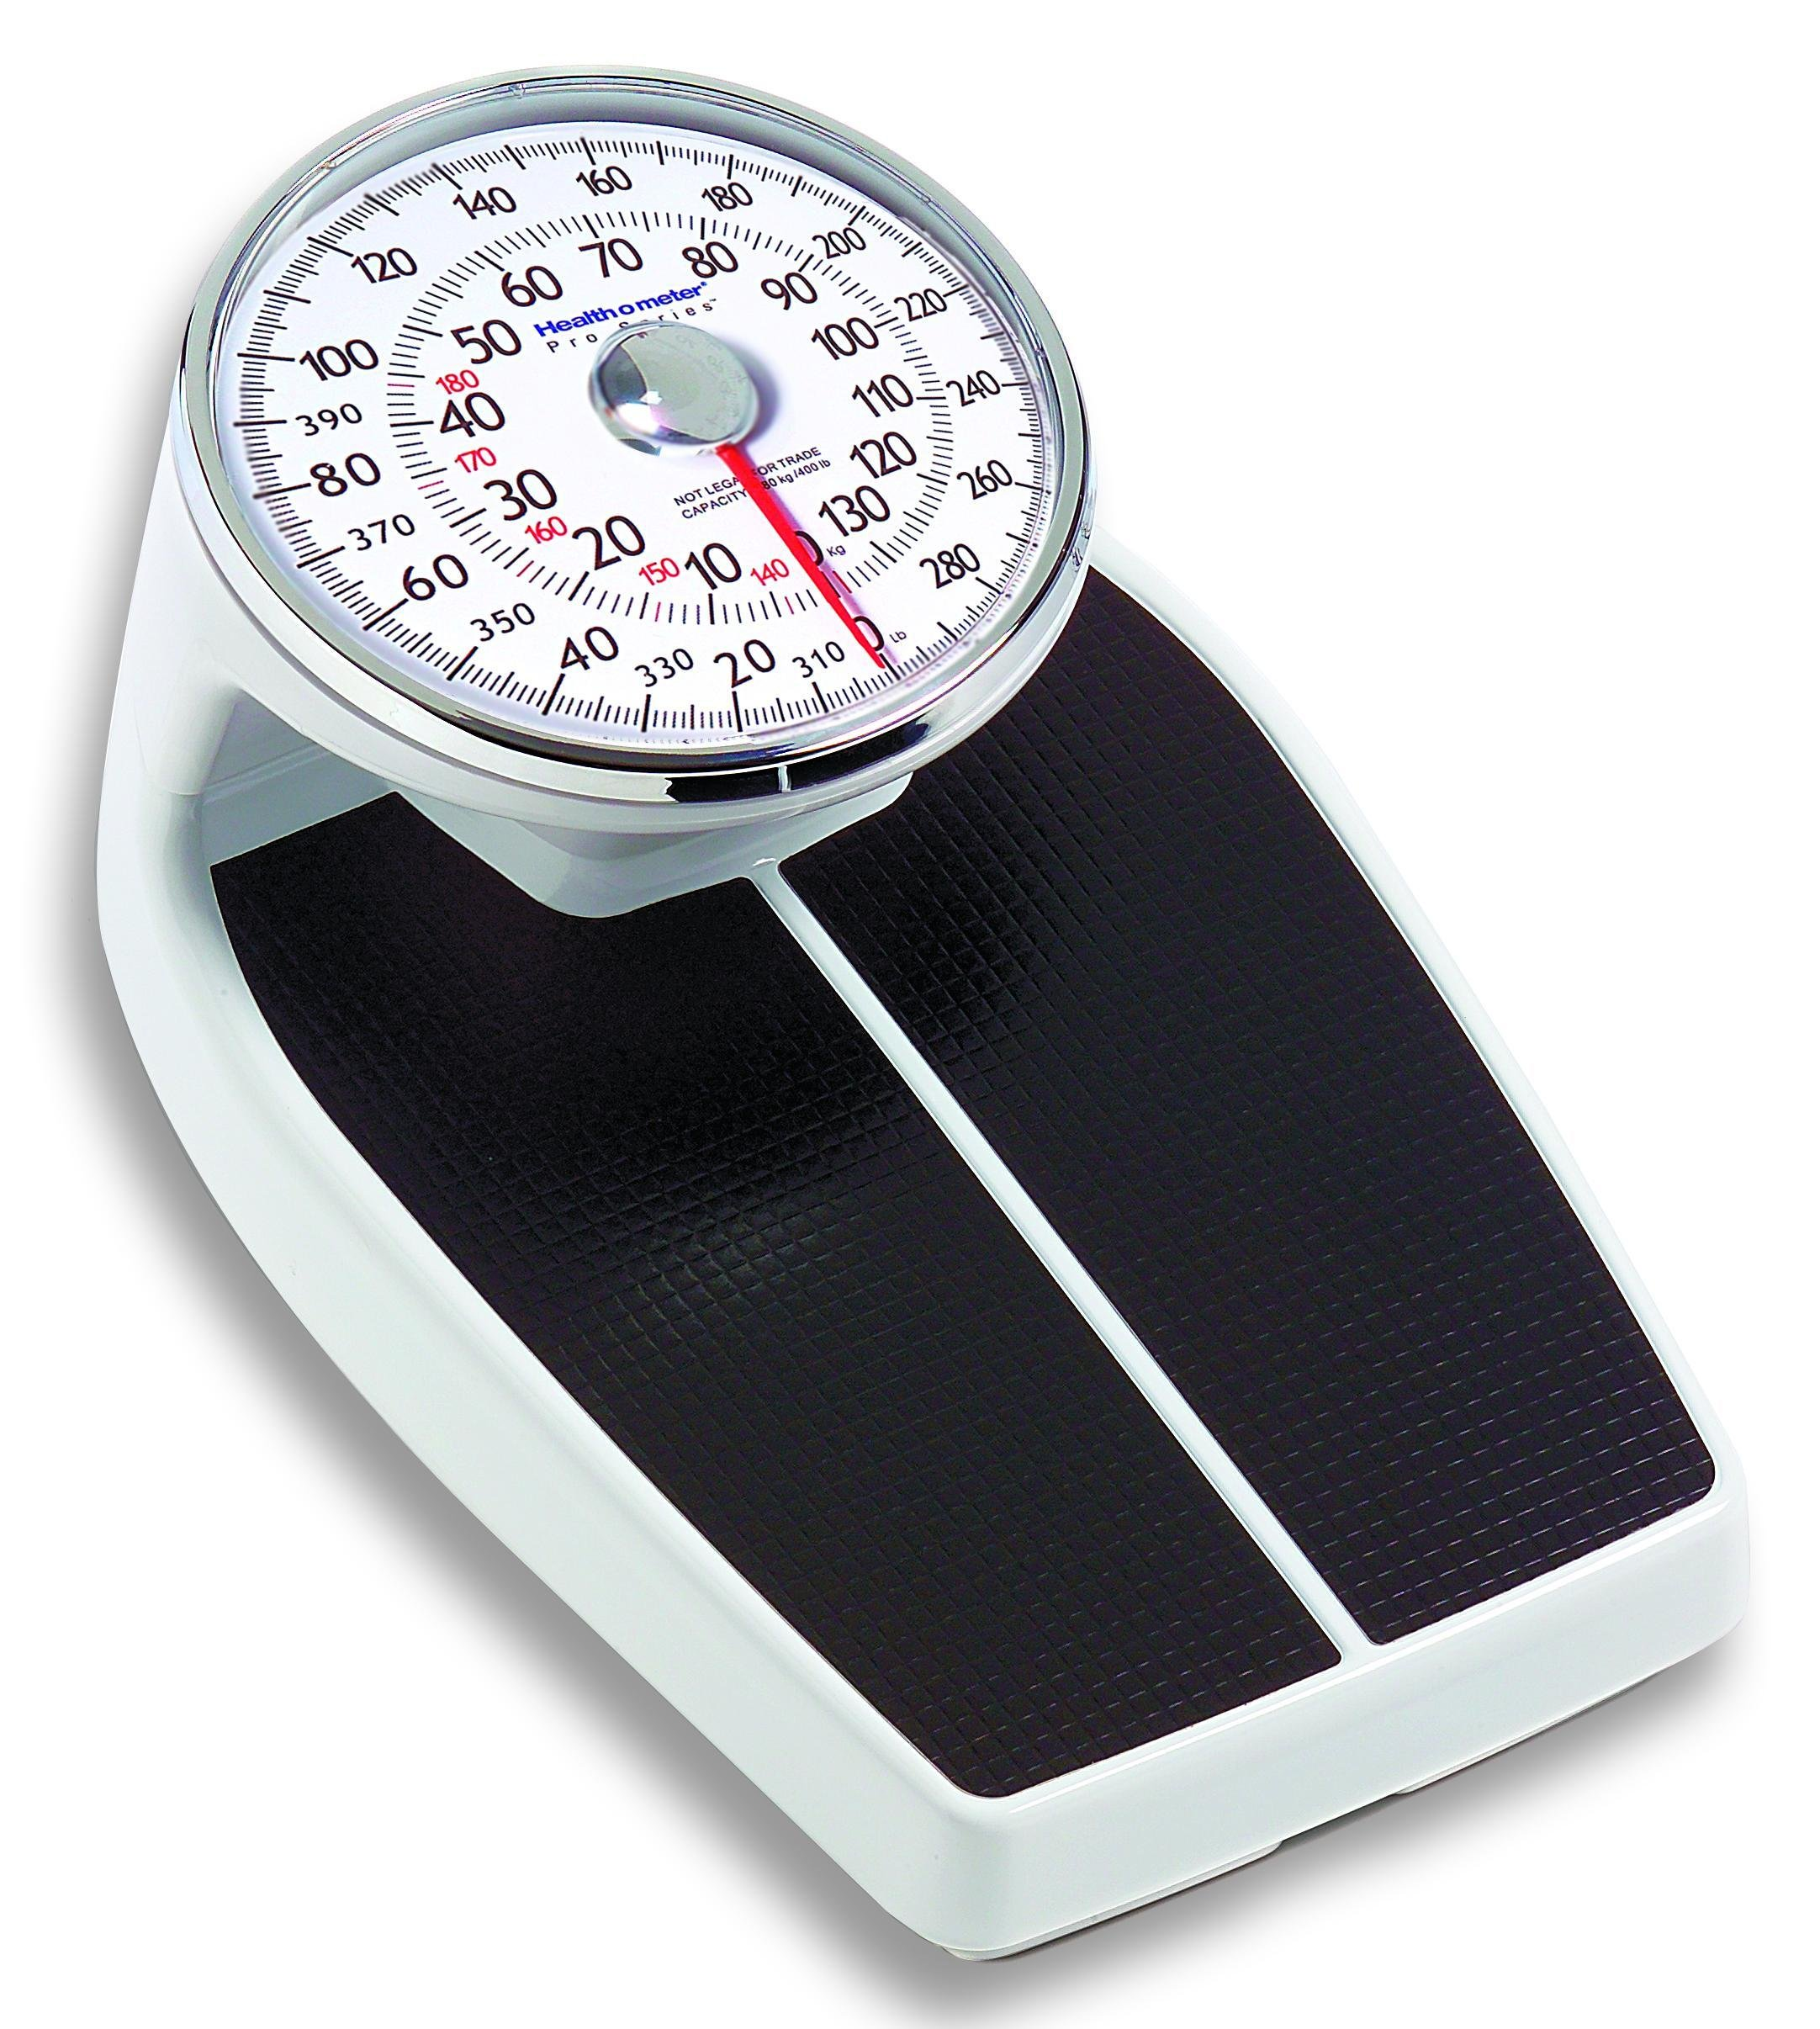 HB160KLEA - Professional Home Care Mechanical Floor Scale 400 lb Capacity (Raised Dial)